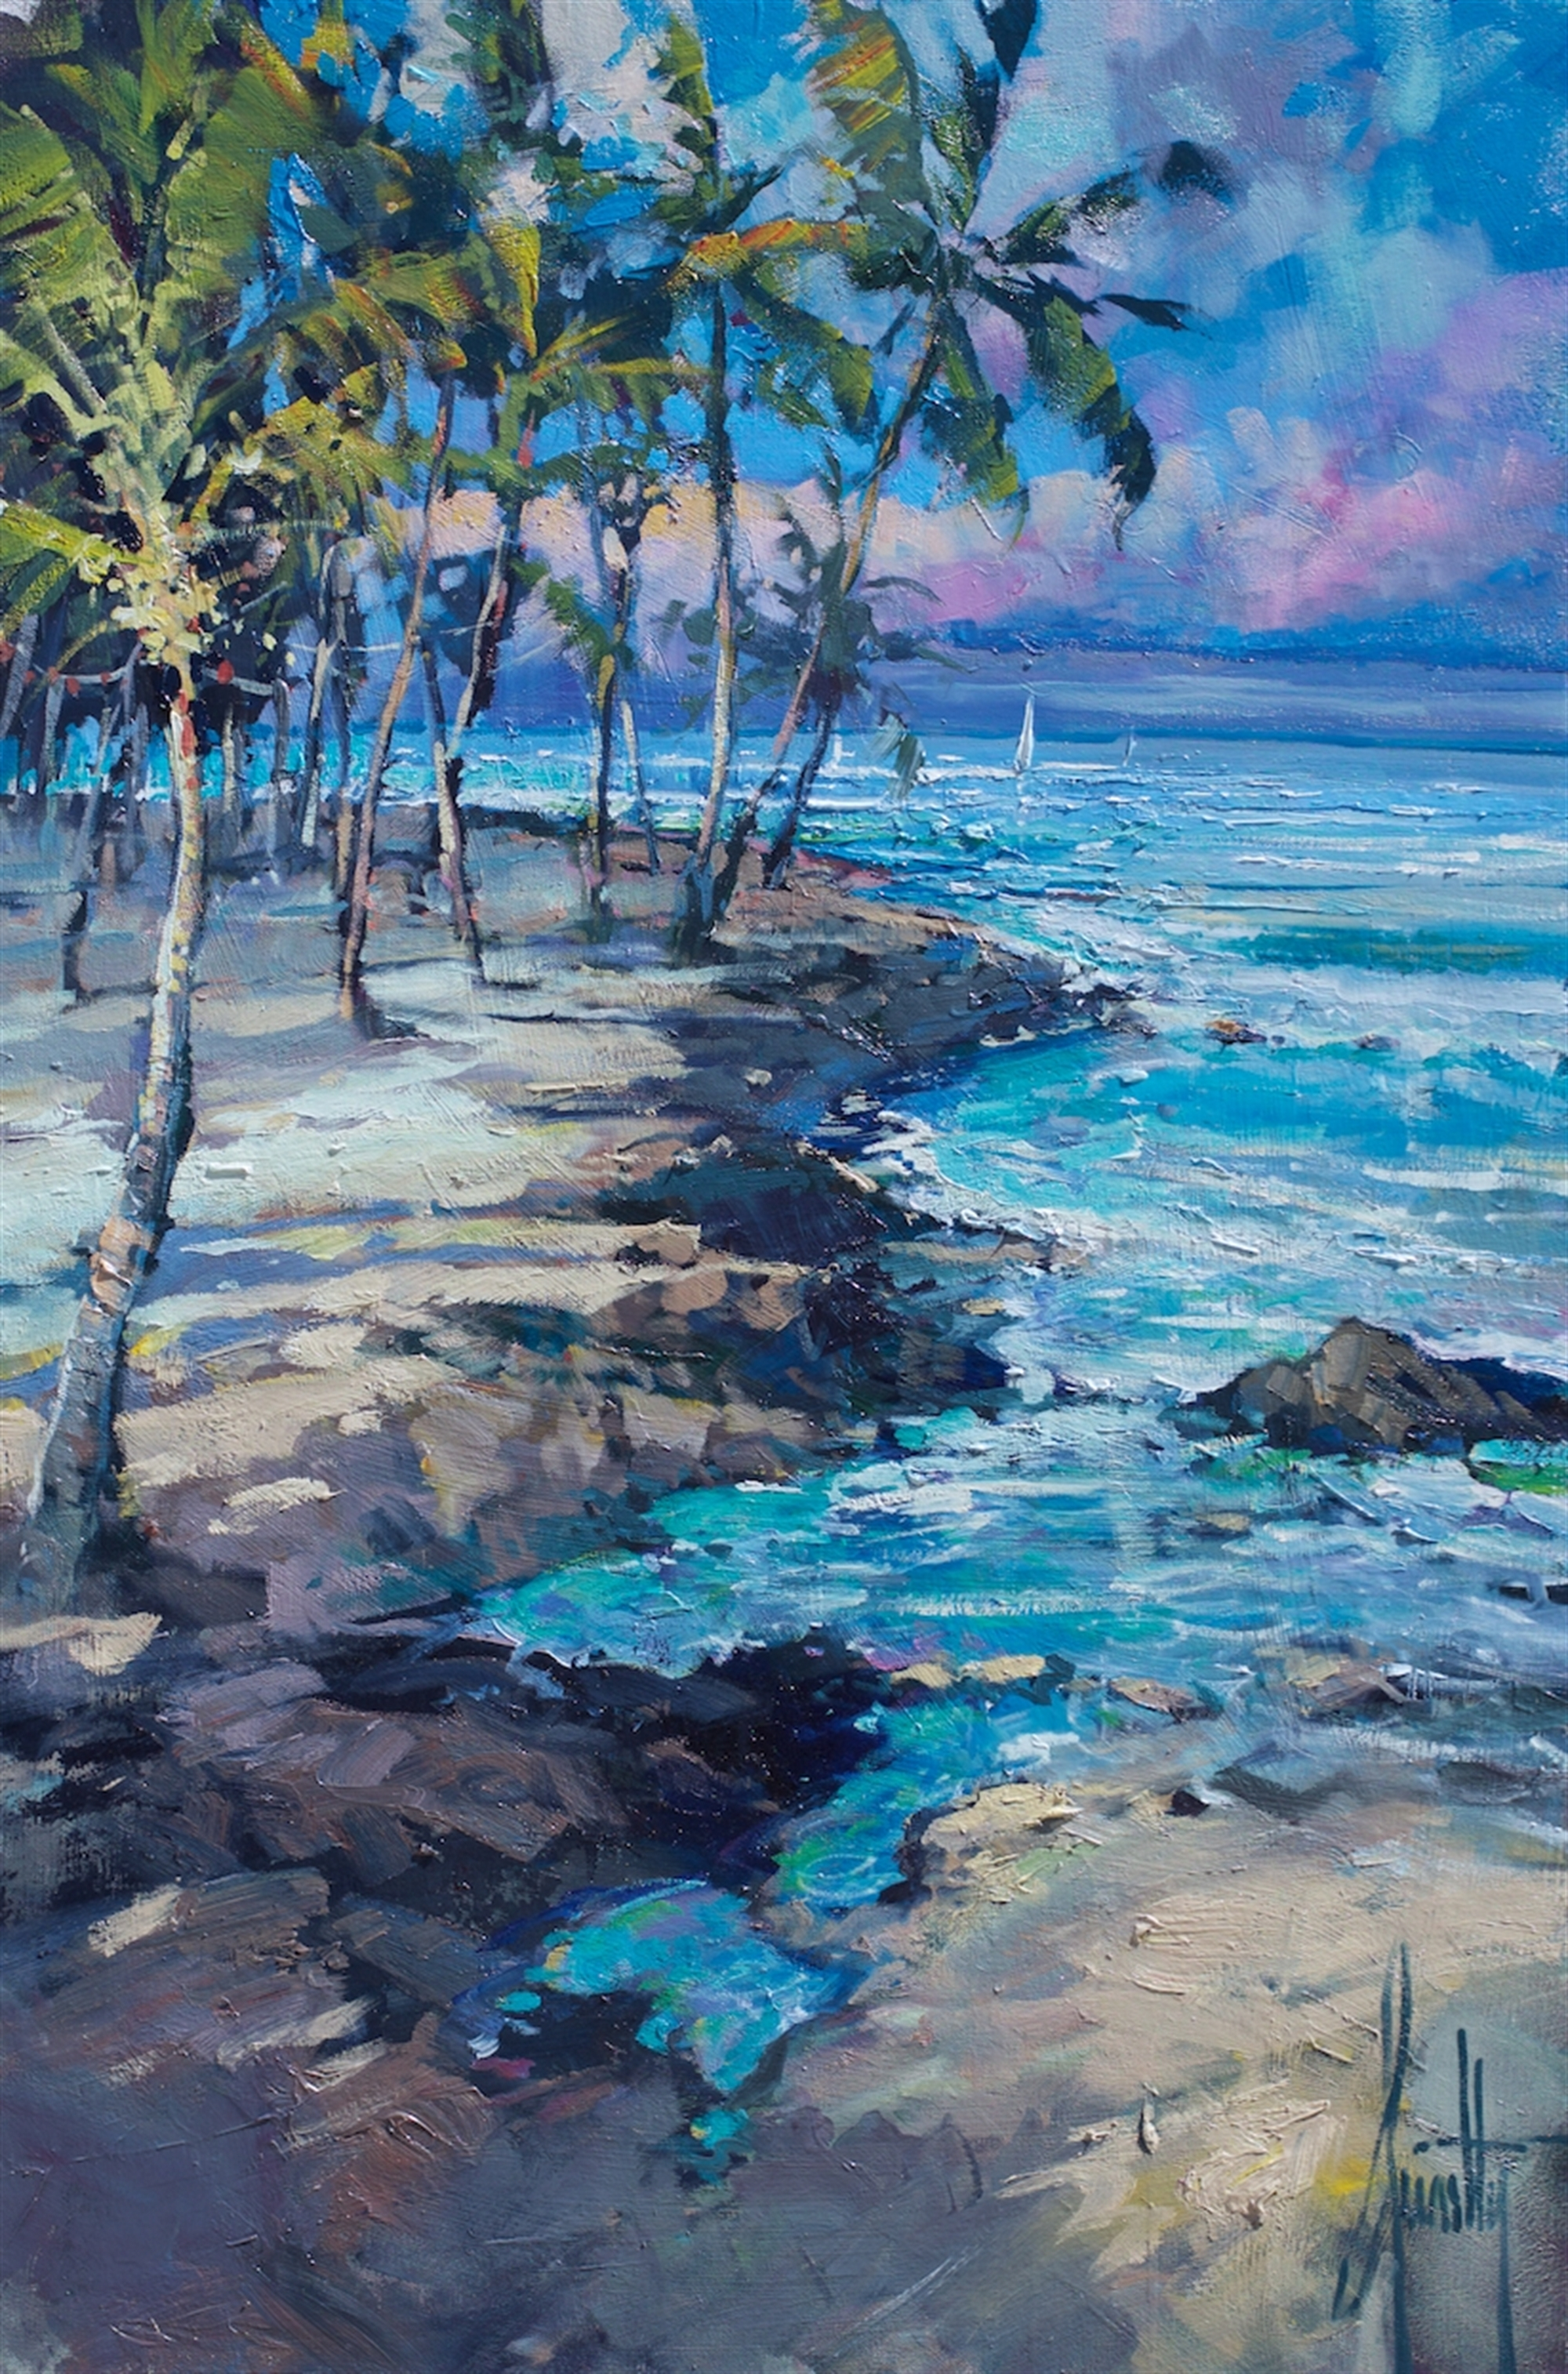 Paradise by Steven Quartly